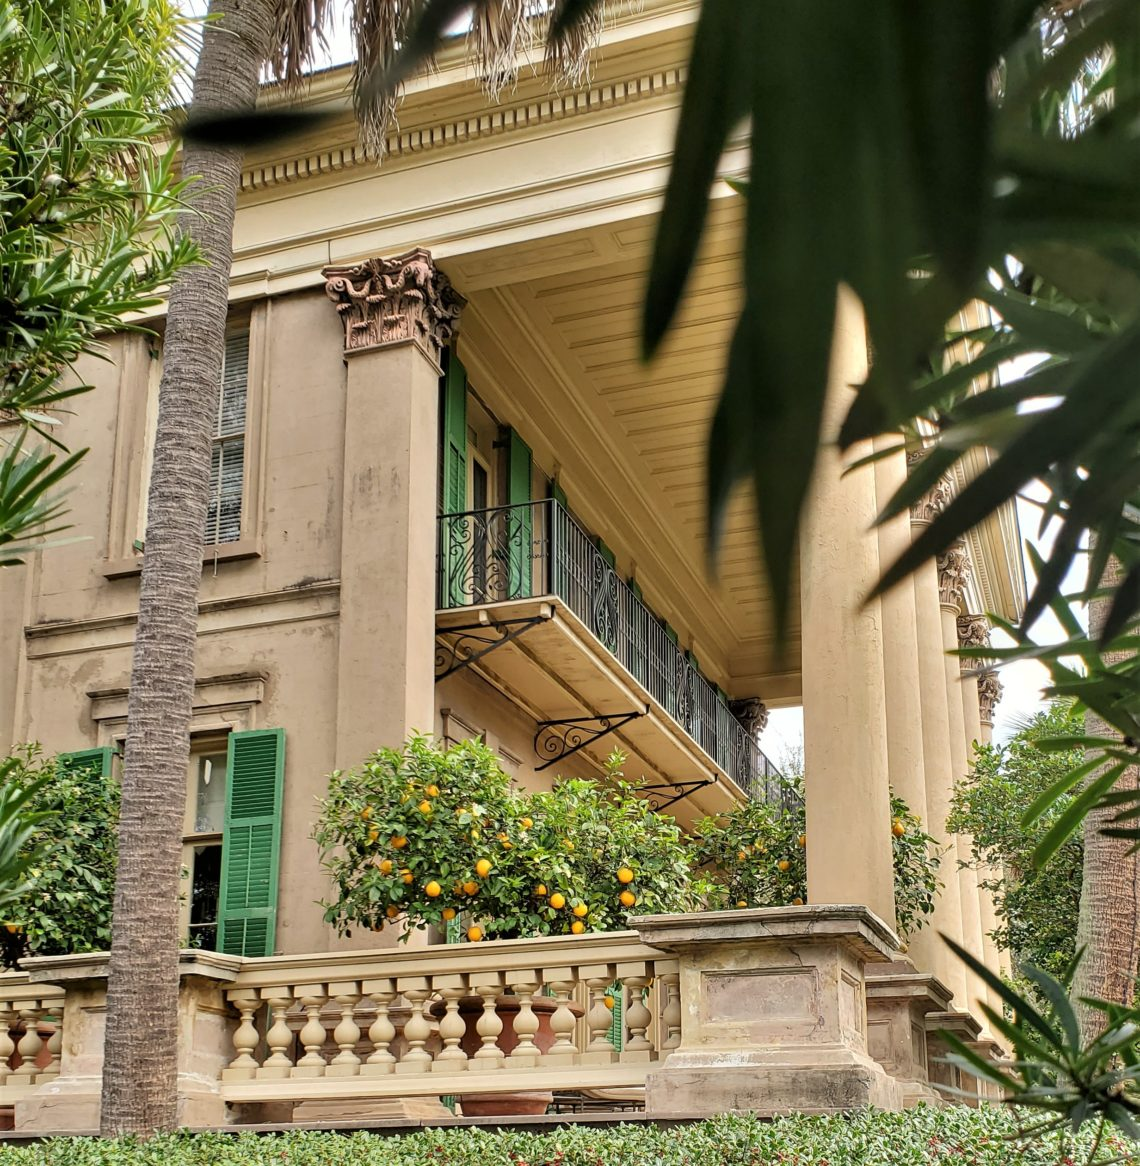 This impressive house (Isaac Jenkins Mikell House, c. 1854) at the corner of Ashley Avenue and Montagu Street was once used as the Charleston library. Now it's the home to one of the Southern Charm reality TV cast members.